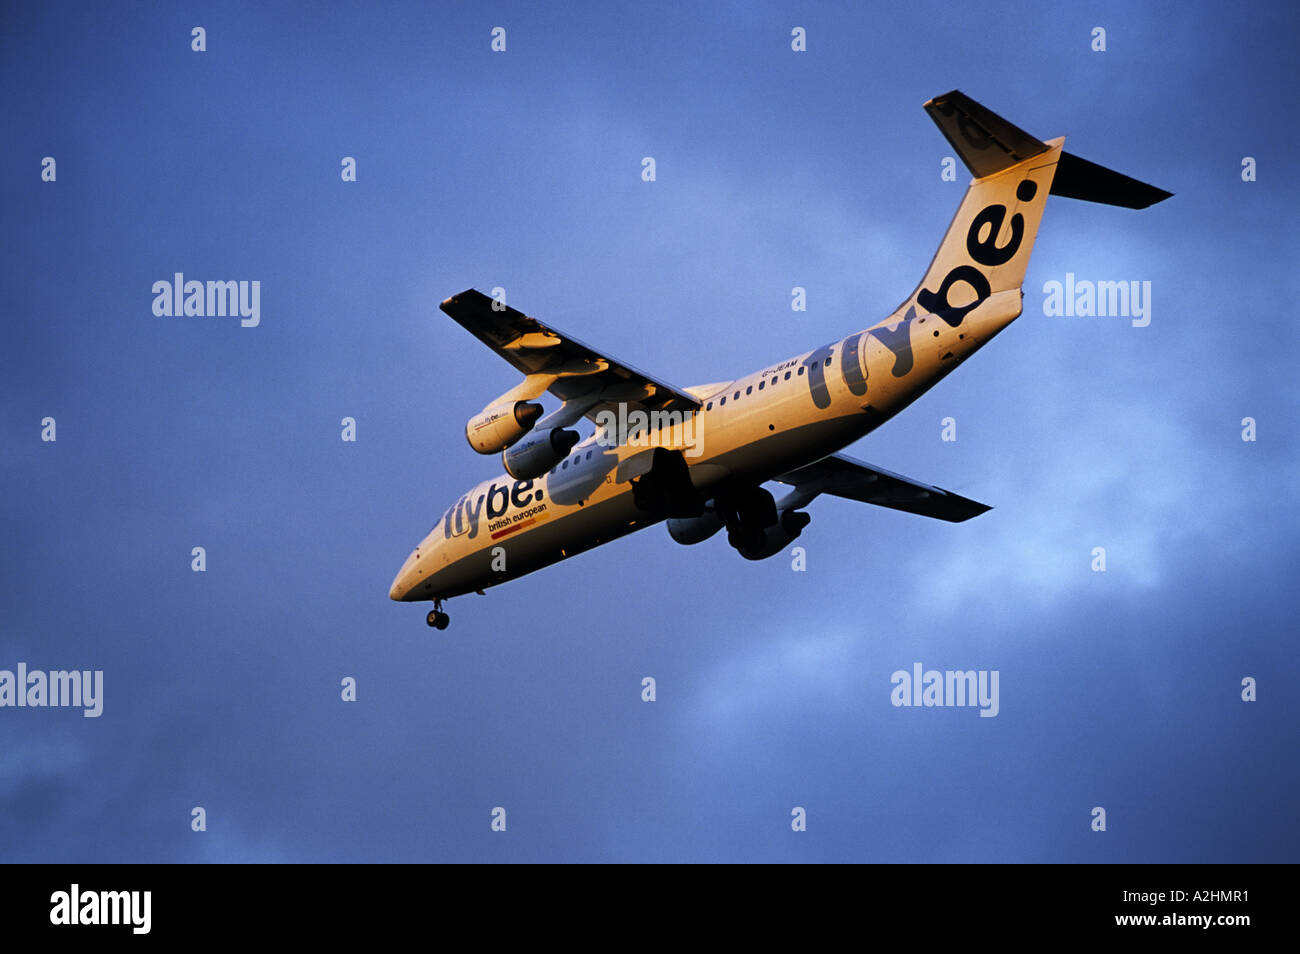 fly be BAe 146 300 aircraft approaching Birmingham International Airport, West Midlands, England, UK - Stock Image